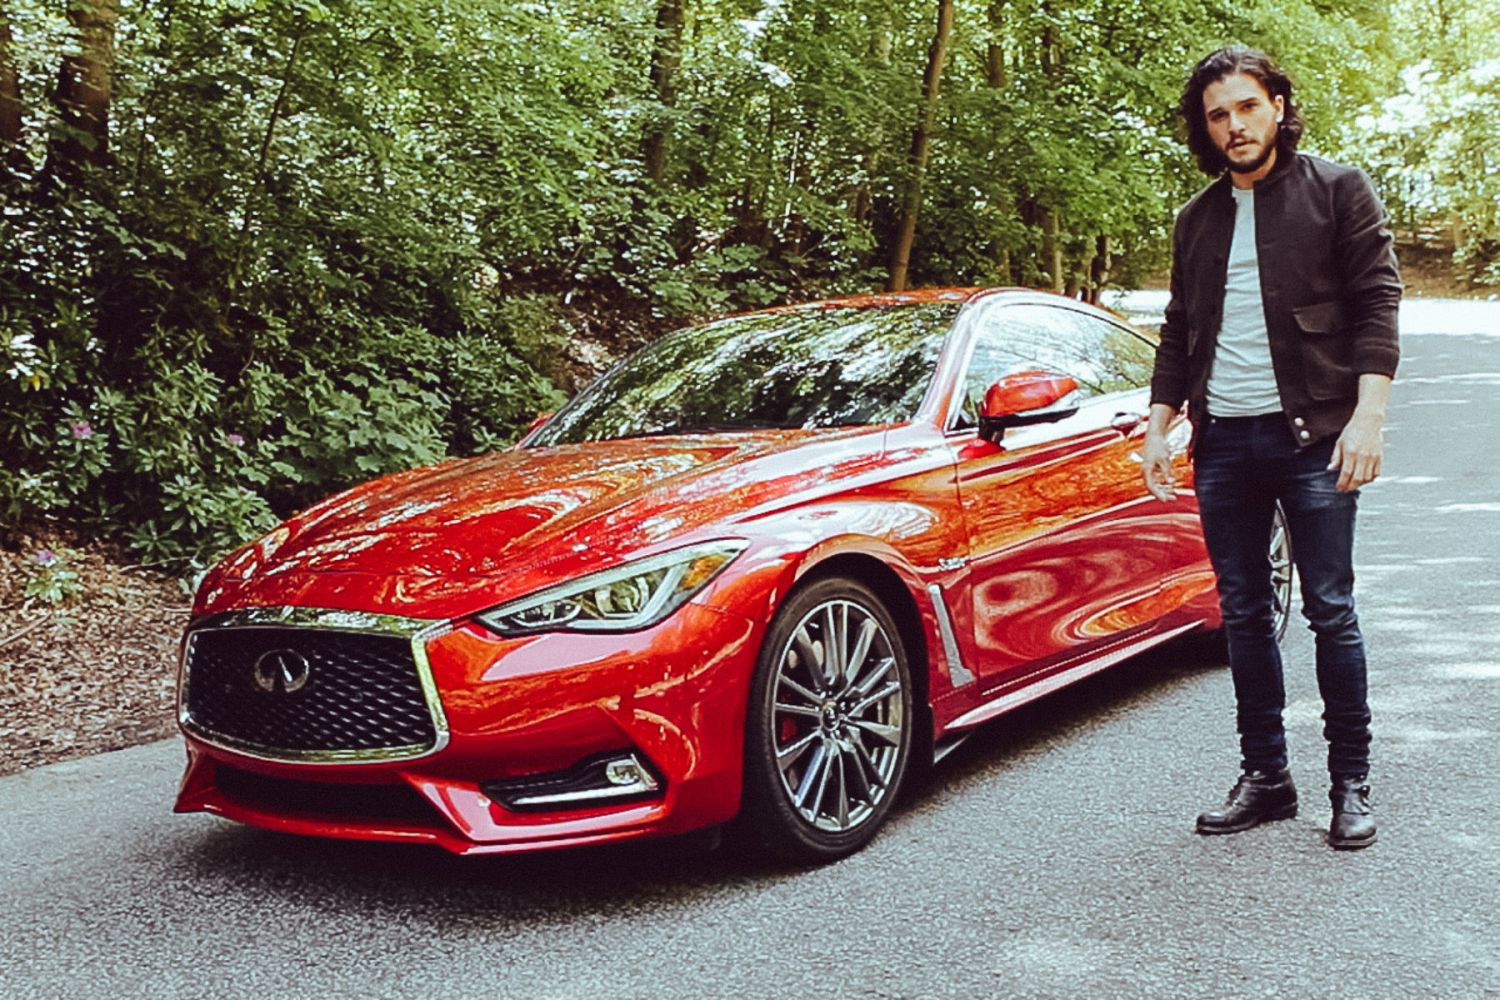 Video: Kit Harington appears in Infiniti Q60 promo clip